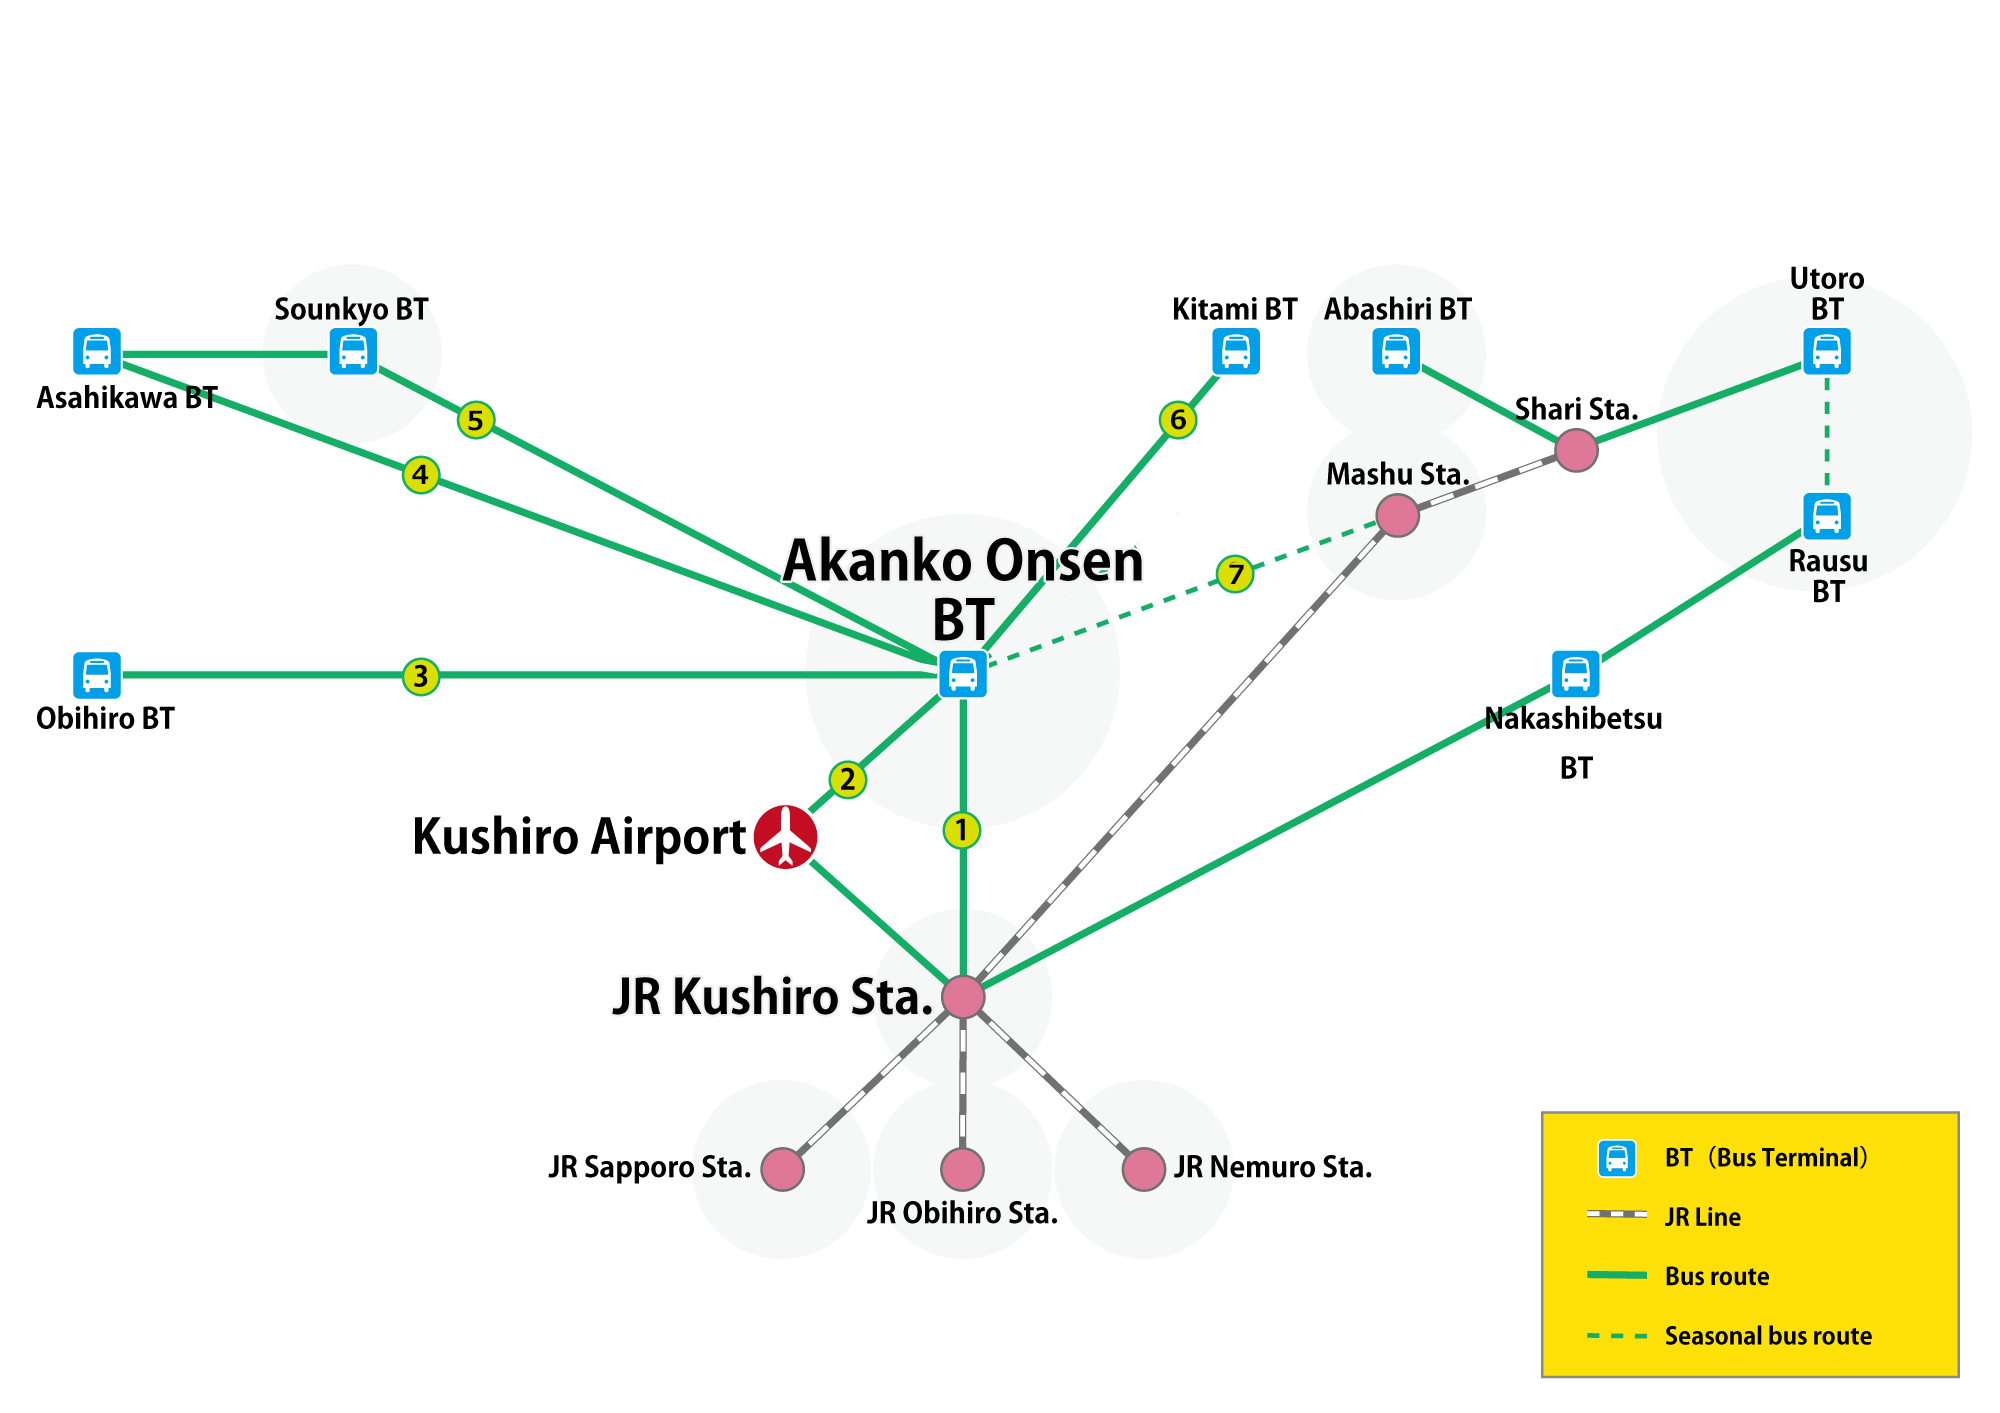 9 routes from Akanko Onsen